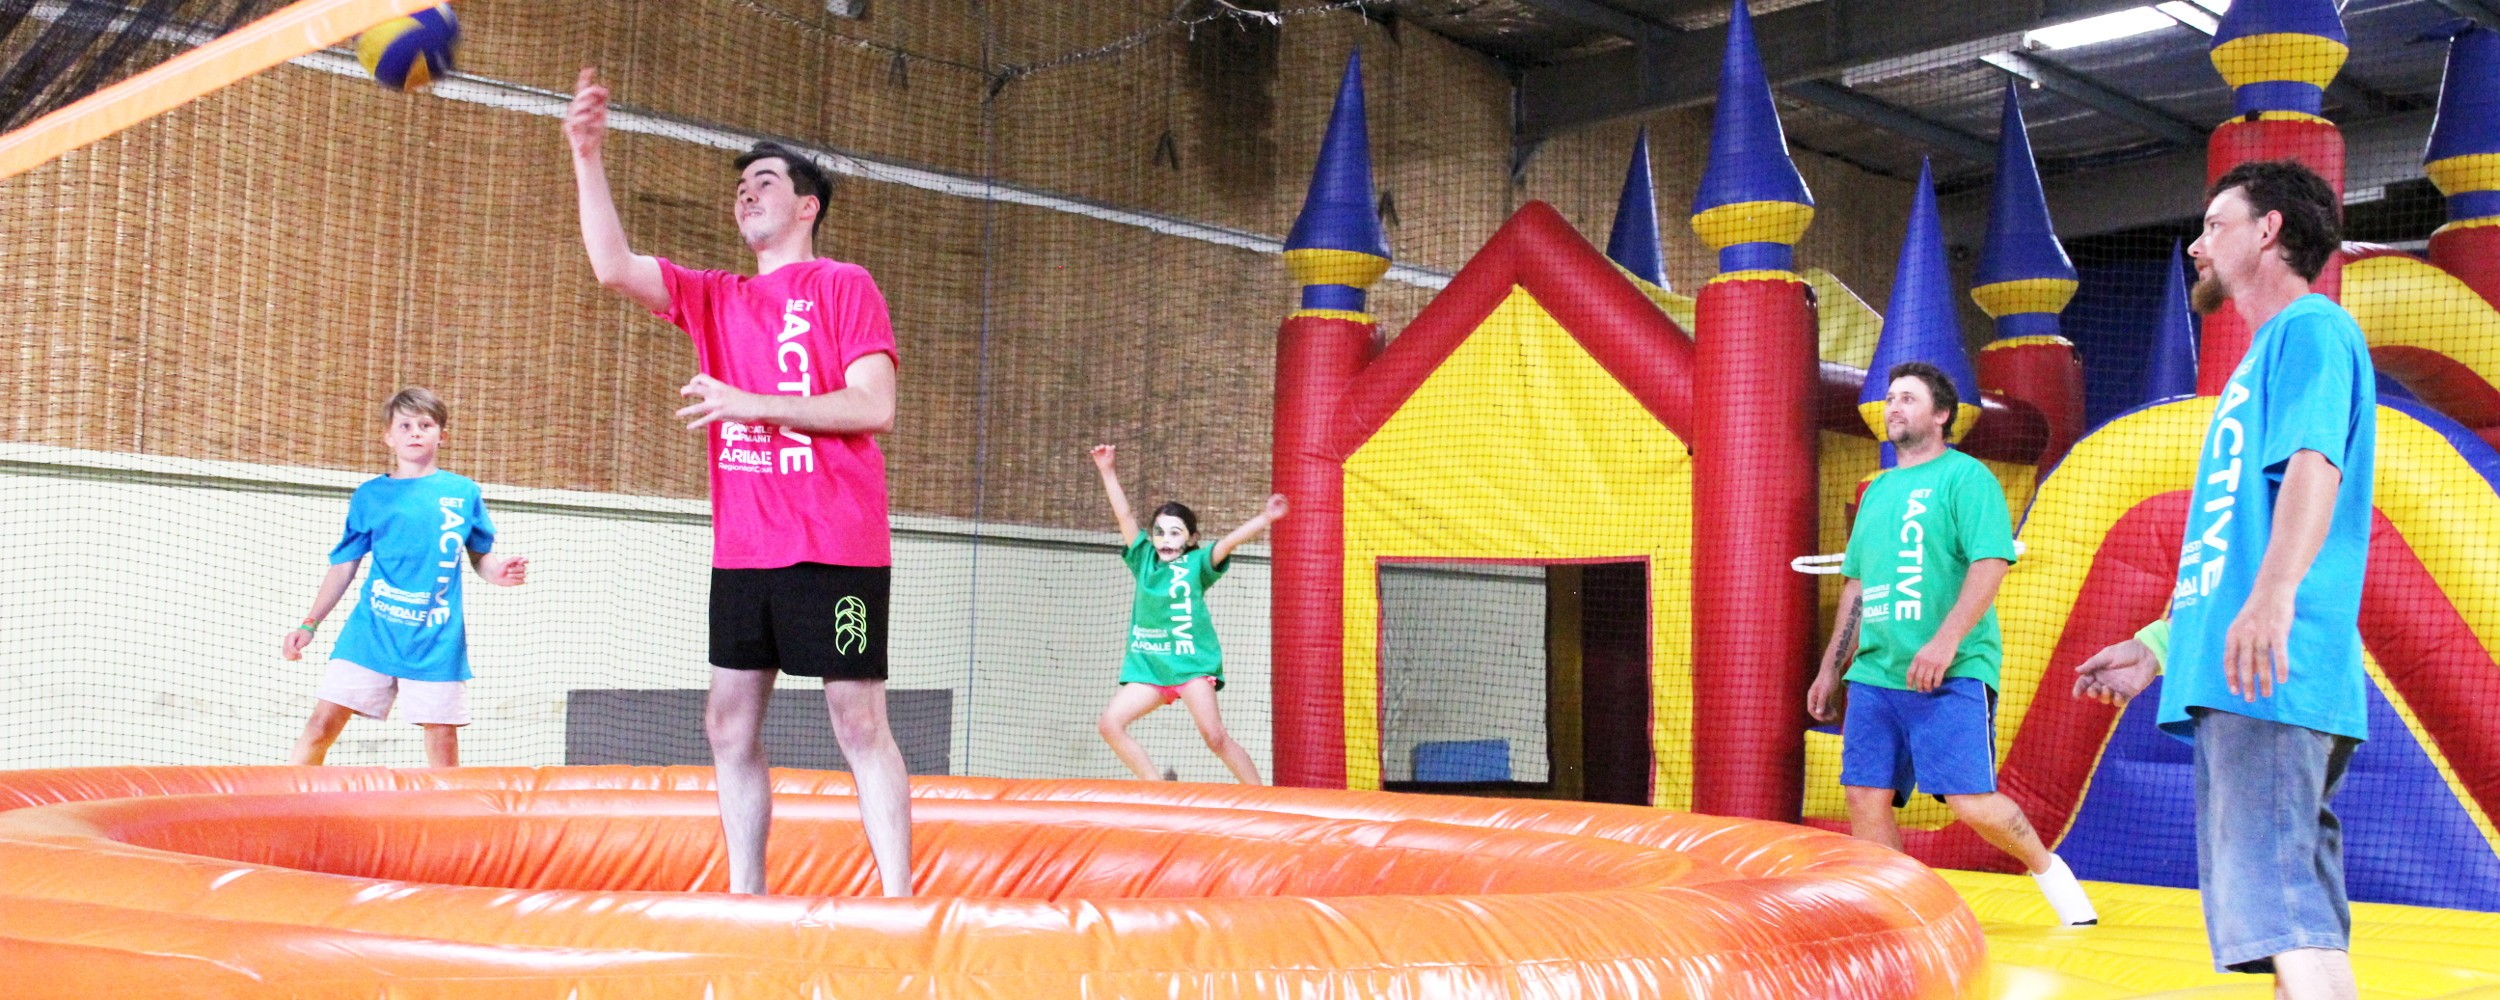 volleybounce_armidale_1